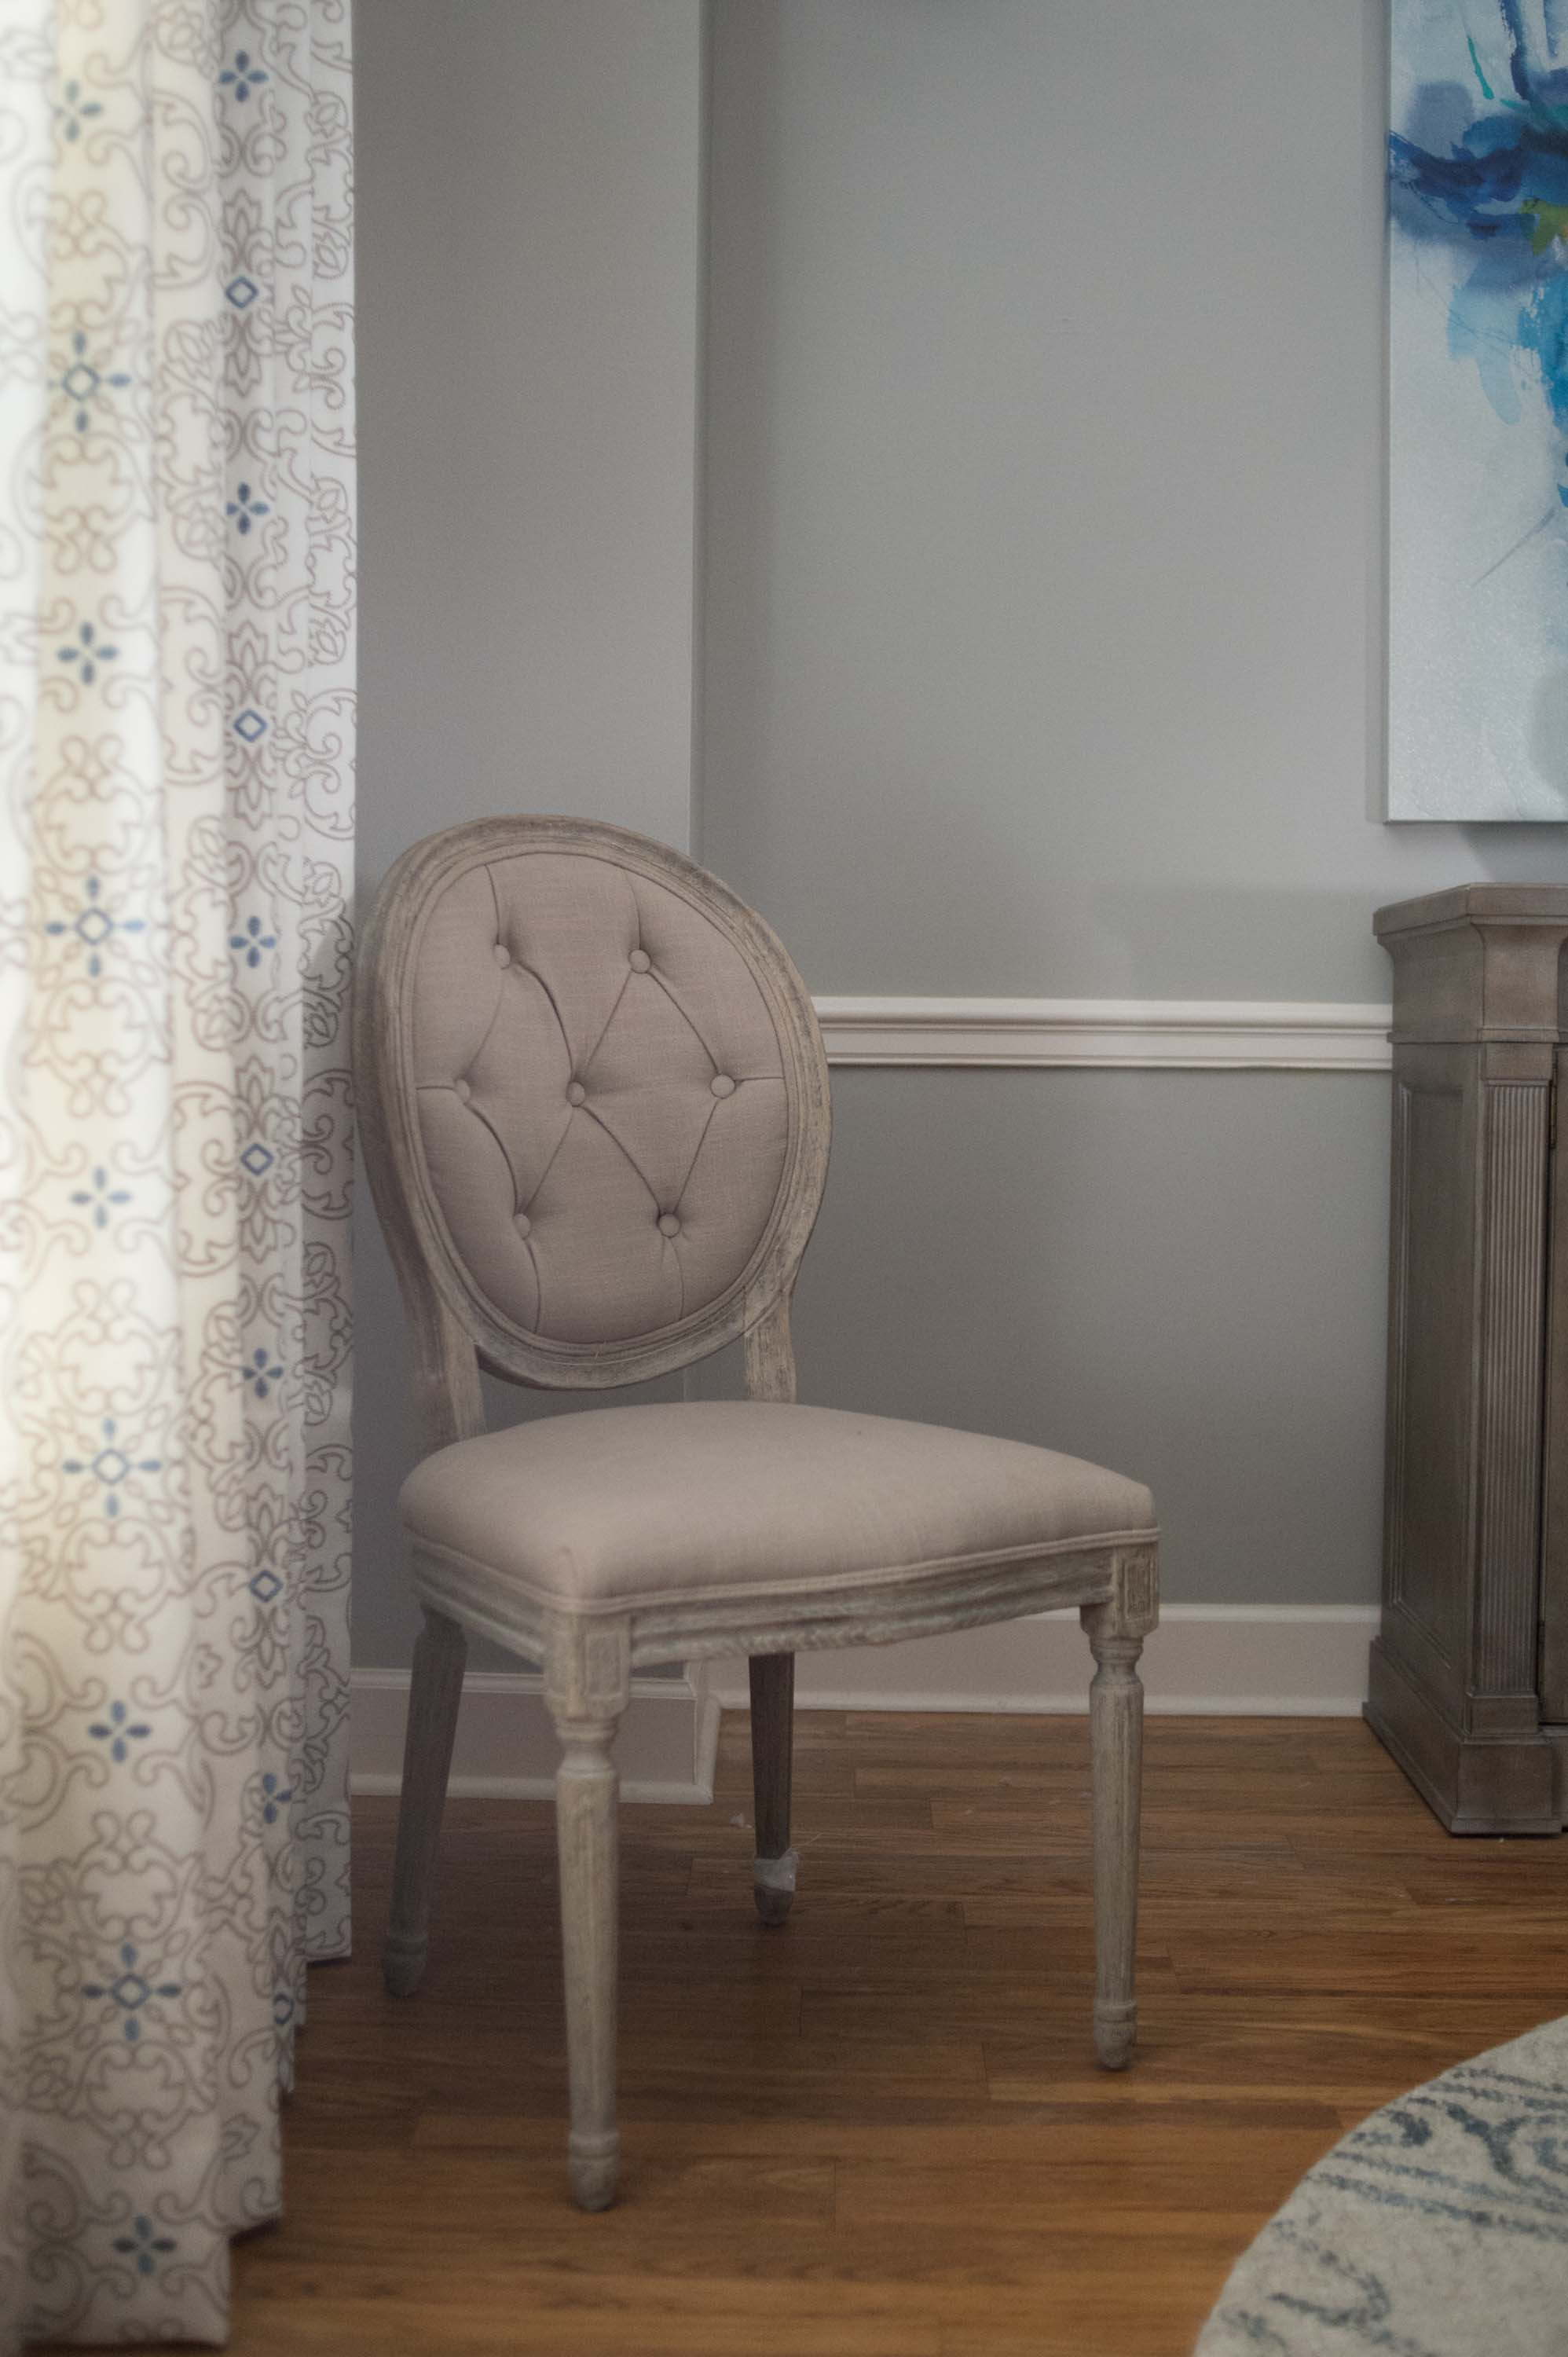 Dining Room Chair with Panels,  Hardwood Floor & Rug